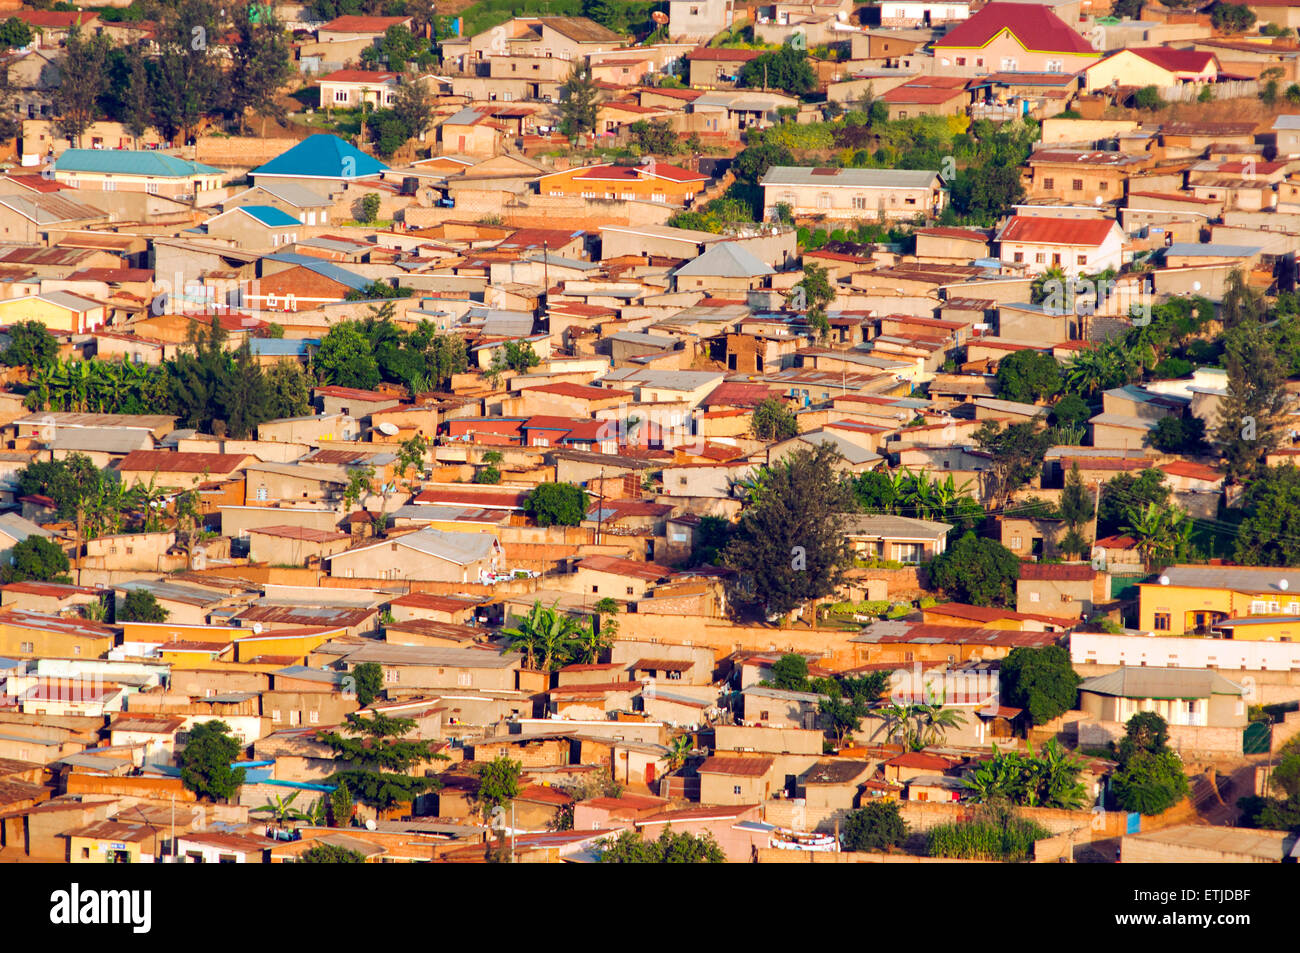 View of southeastern suburbs from KN 7 Avenue, Kigali, Rwanda - Stock Image